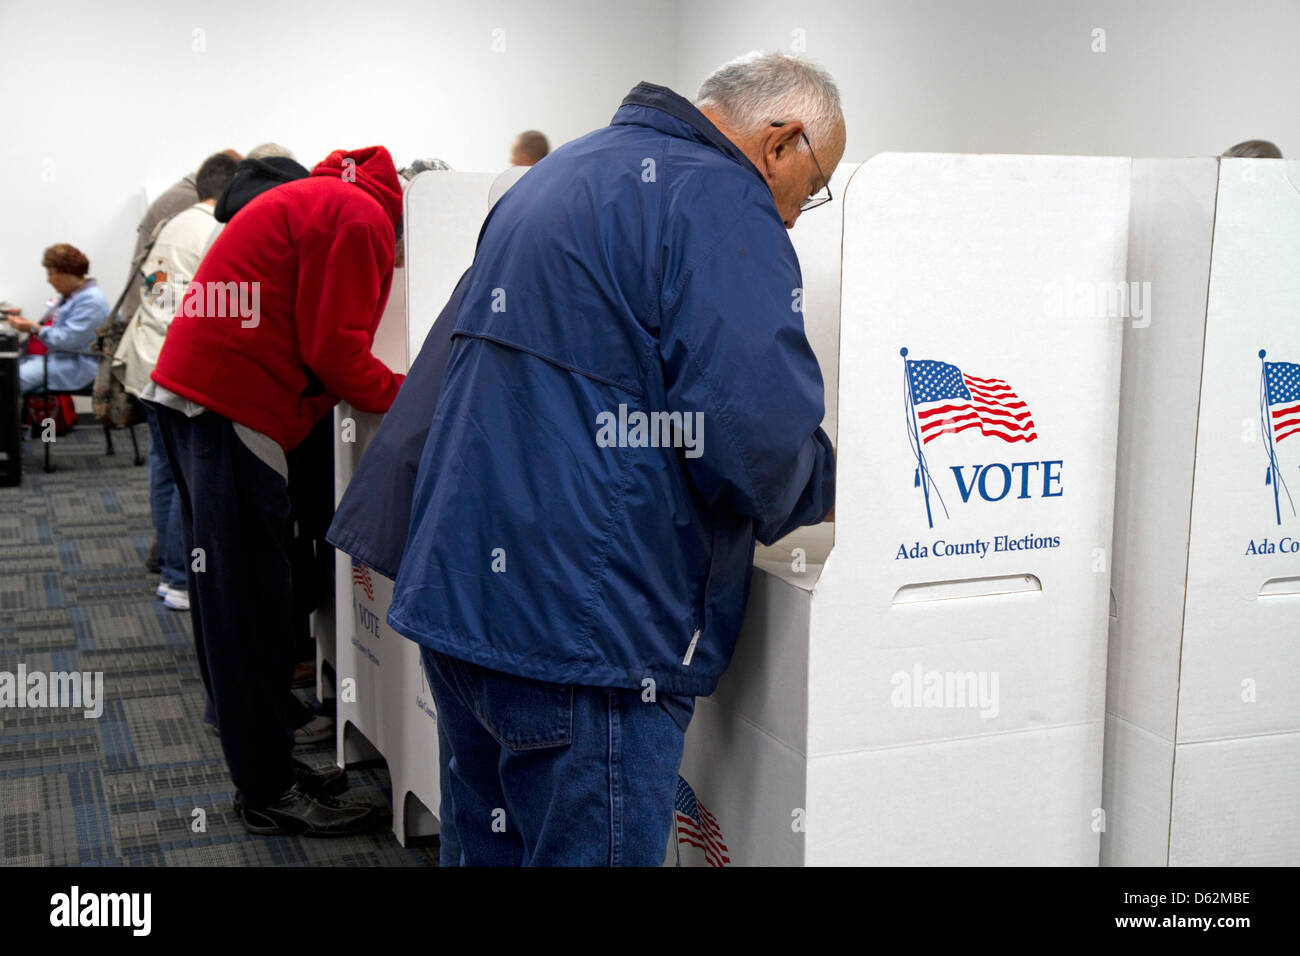 People vote in cardboard voting booths at a polling station in Boise, Idaho, USA. - Stock Image